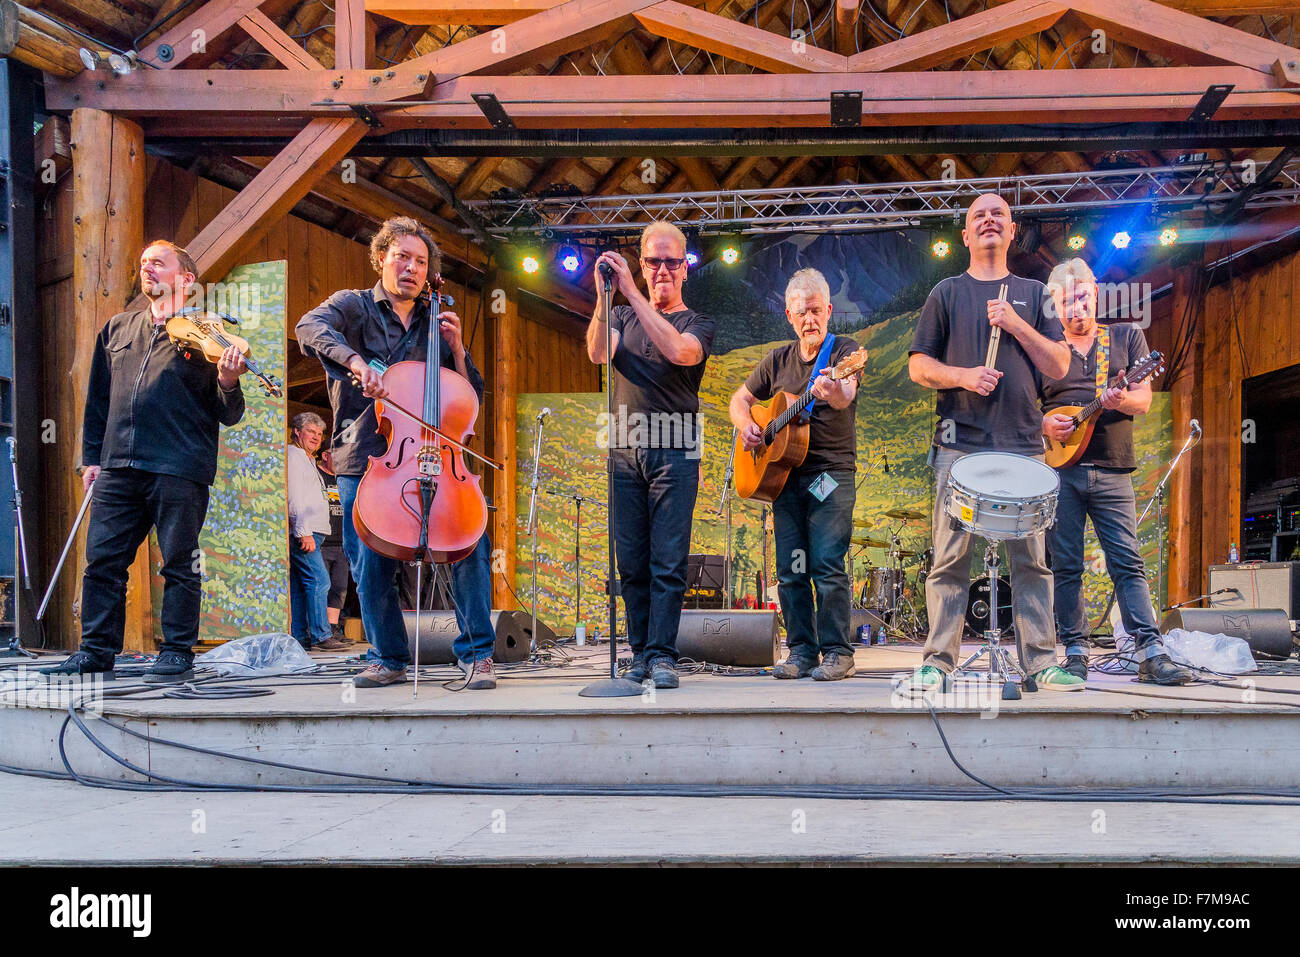 Oysterband, main stage, Canmore Folk Music Festival, Canmore, Alberta, Canada - Stock Image